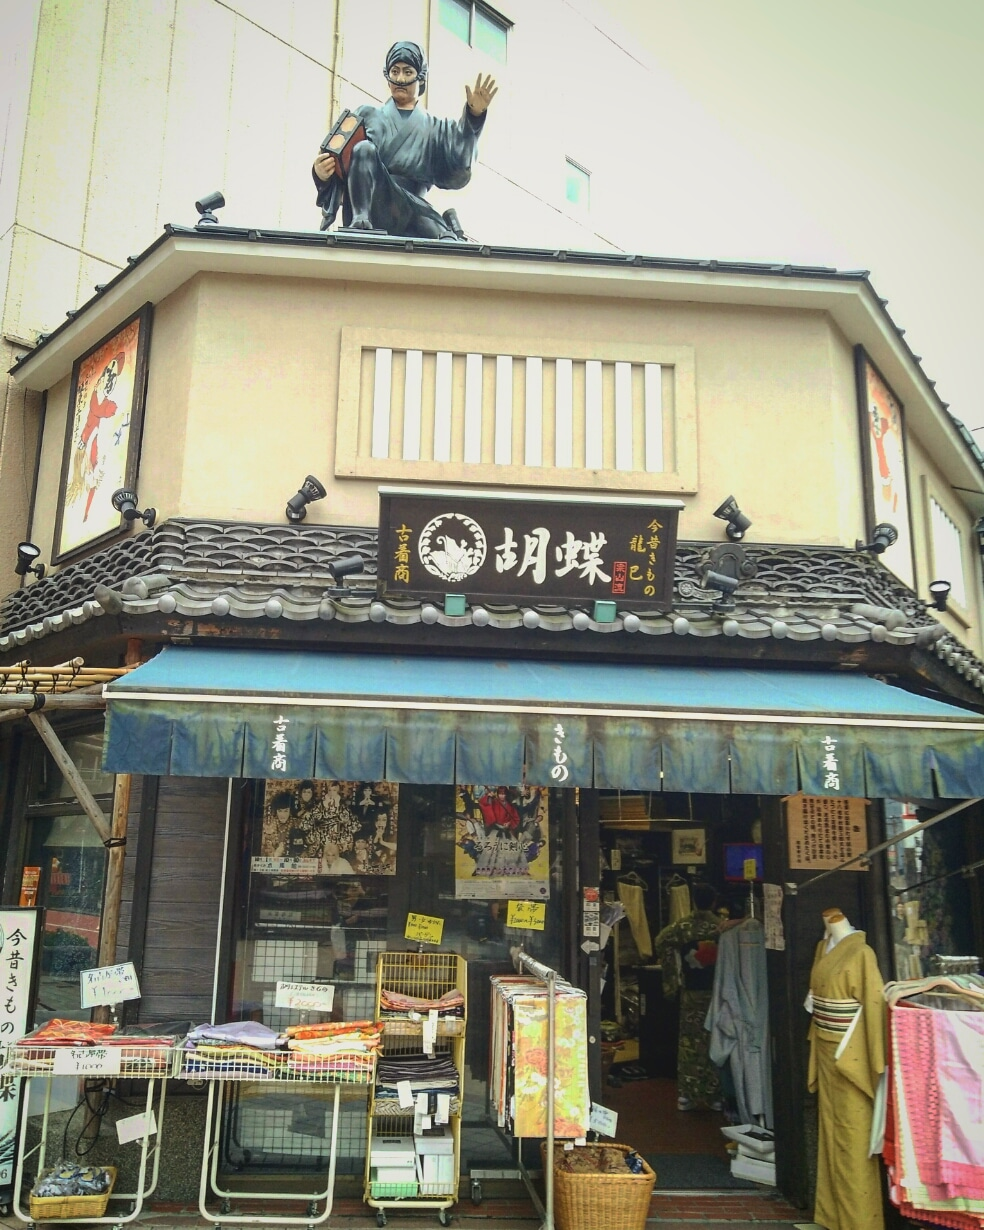 Picture of the kimono bargain shop with the statue of the thief on the roof